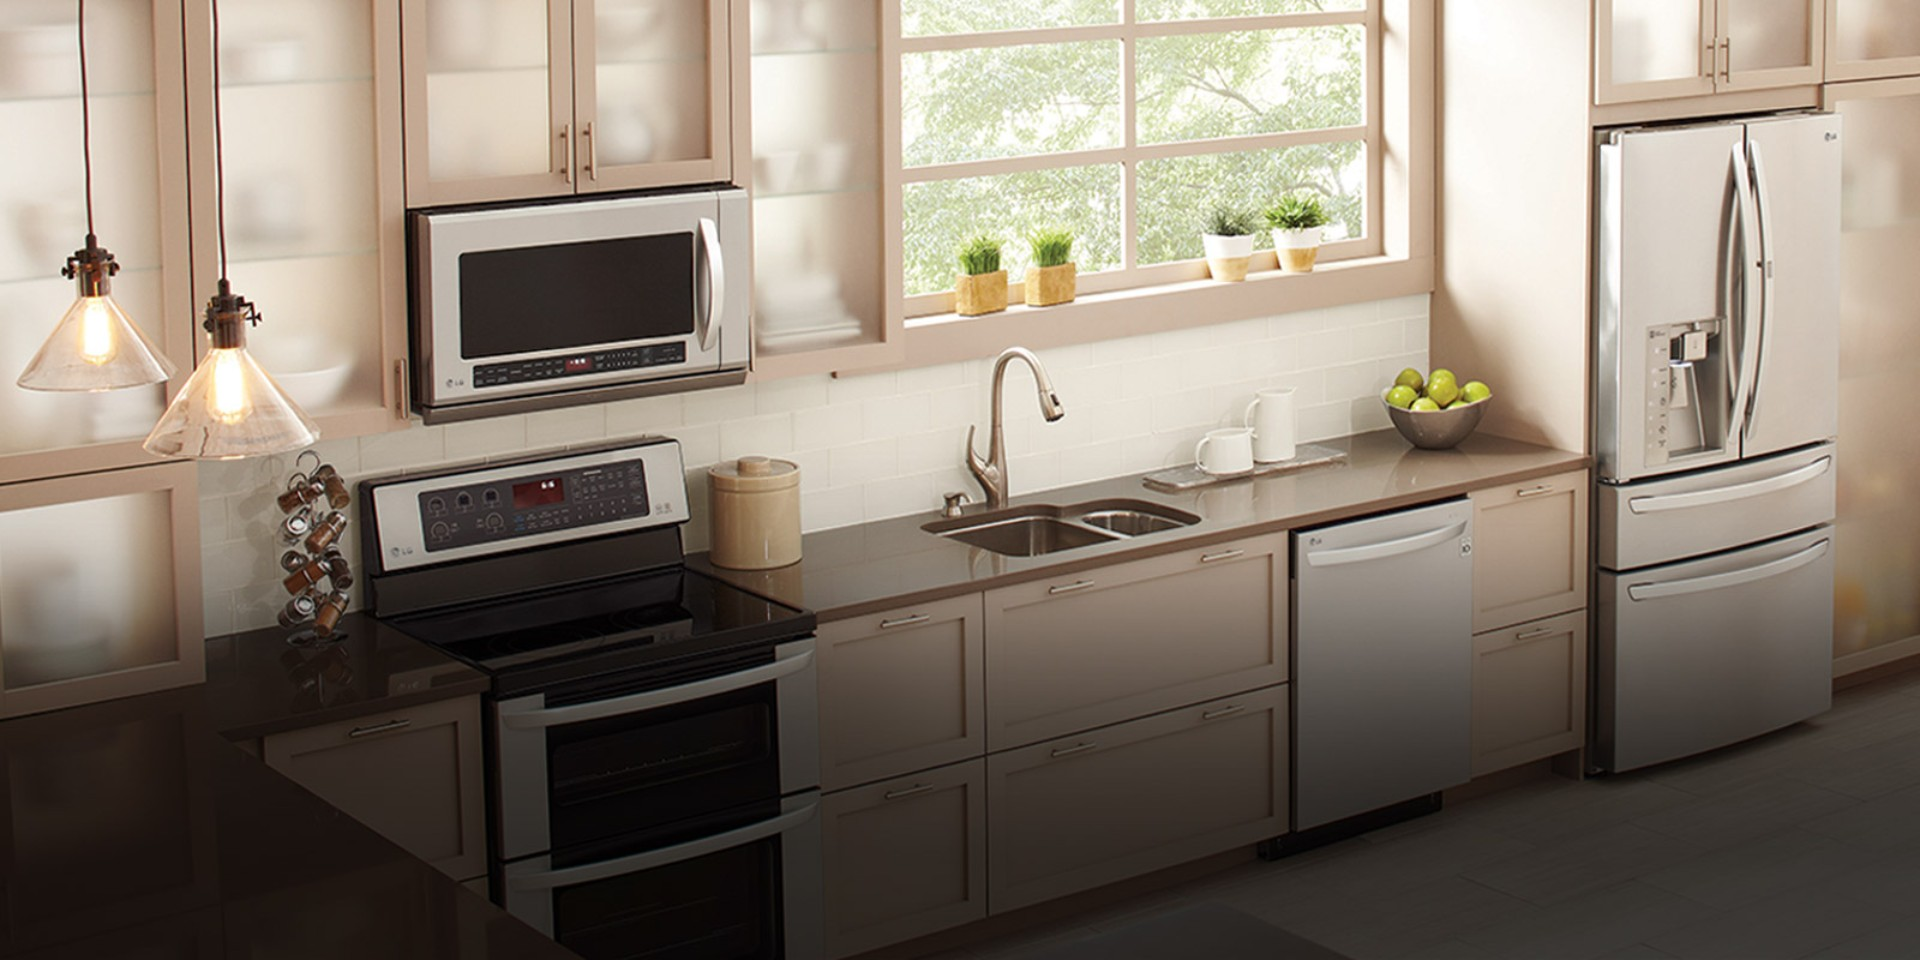 Top 10 Under Cabinet Microwave Ovens in 2019 | Top 10 Critic